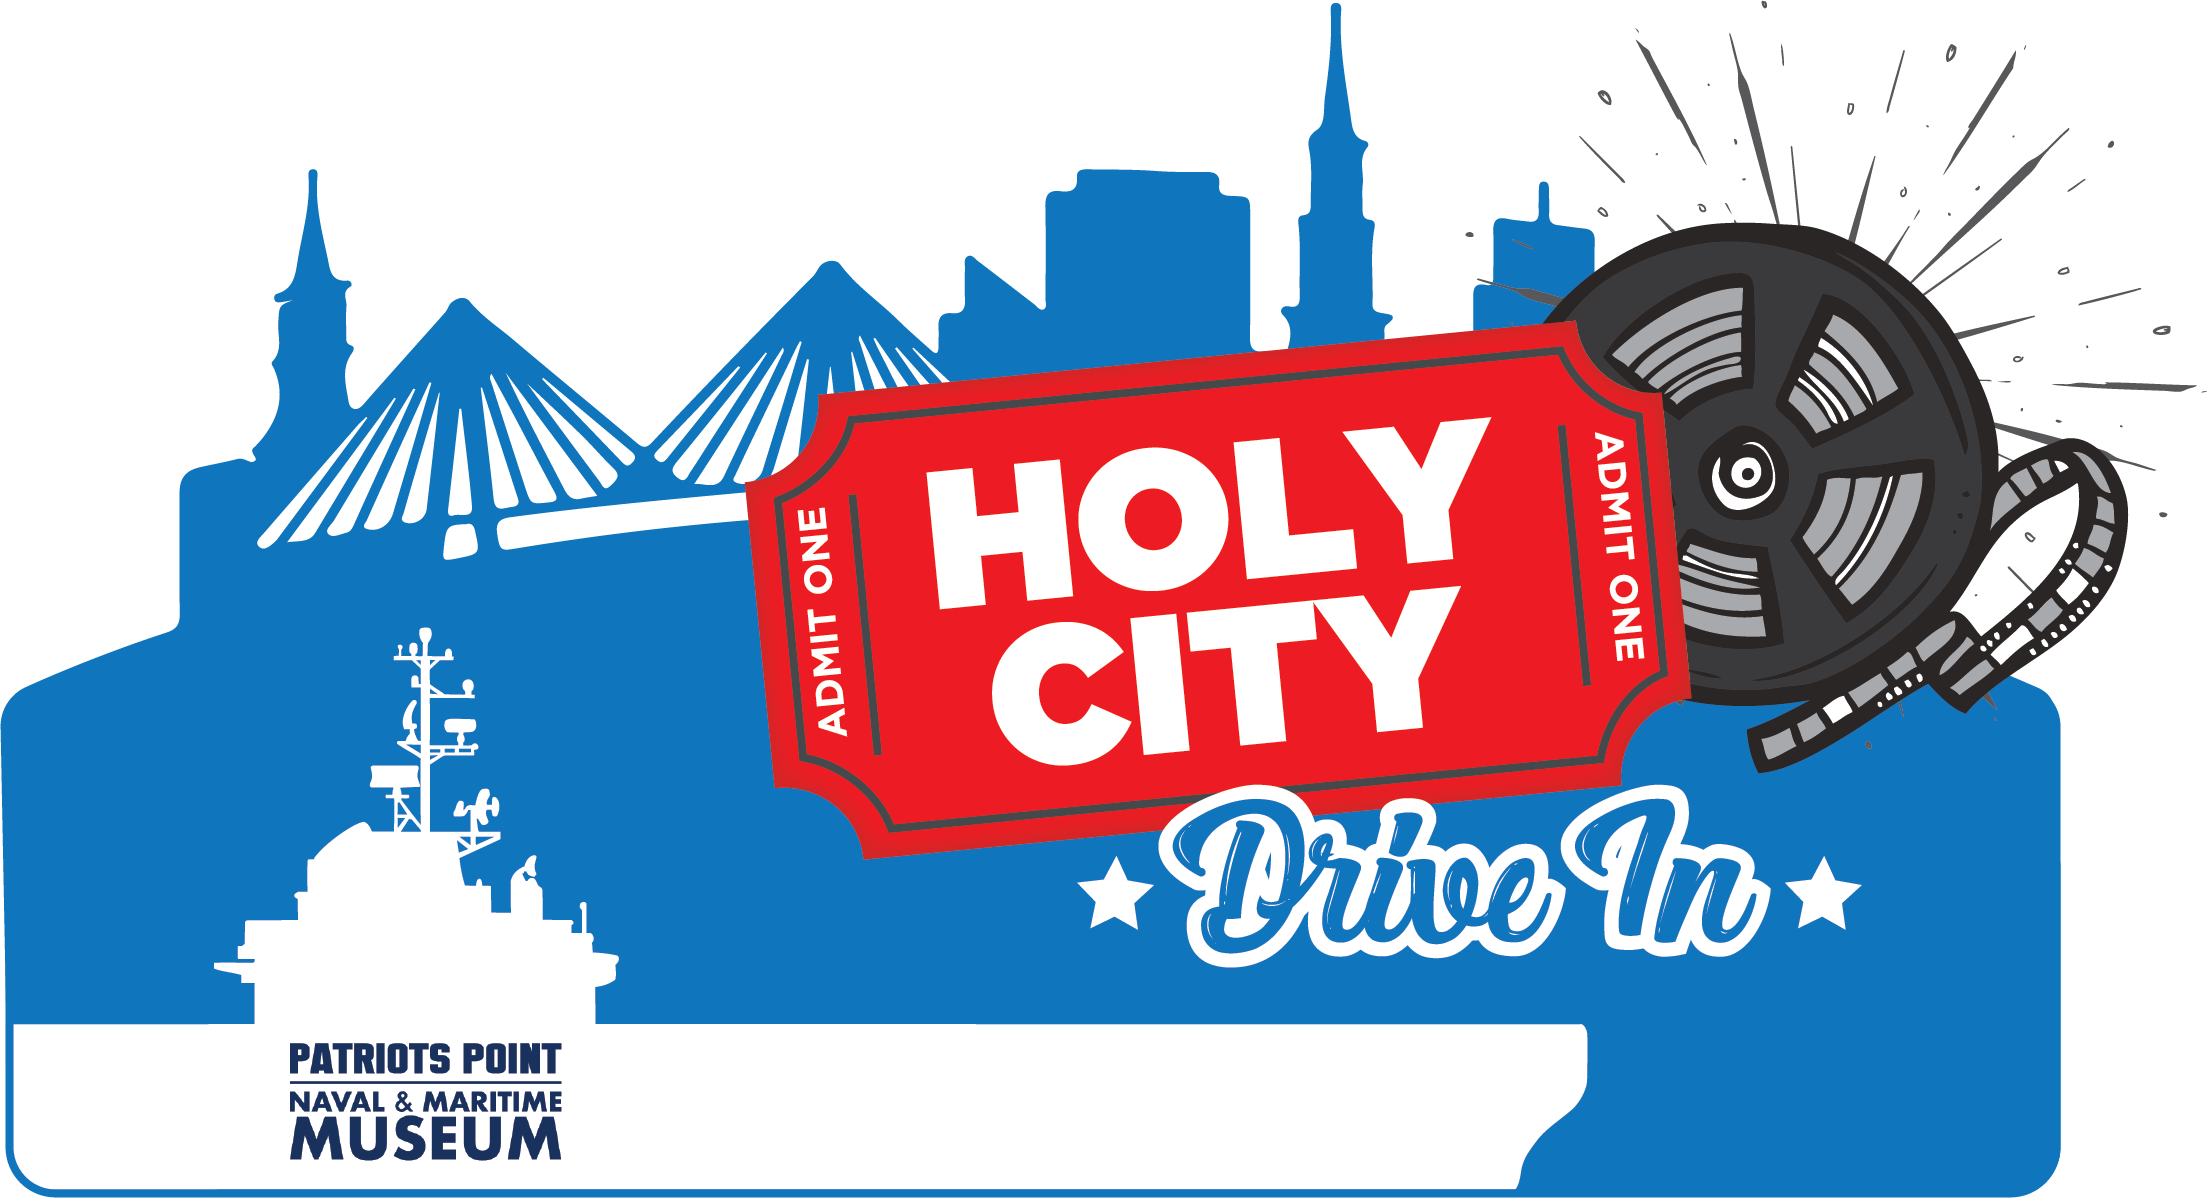 Holy City Drive-In